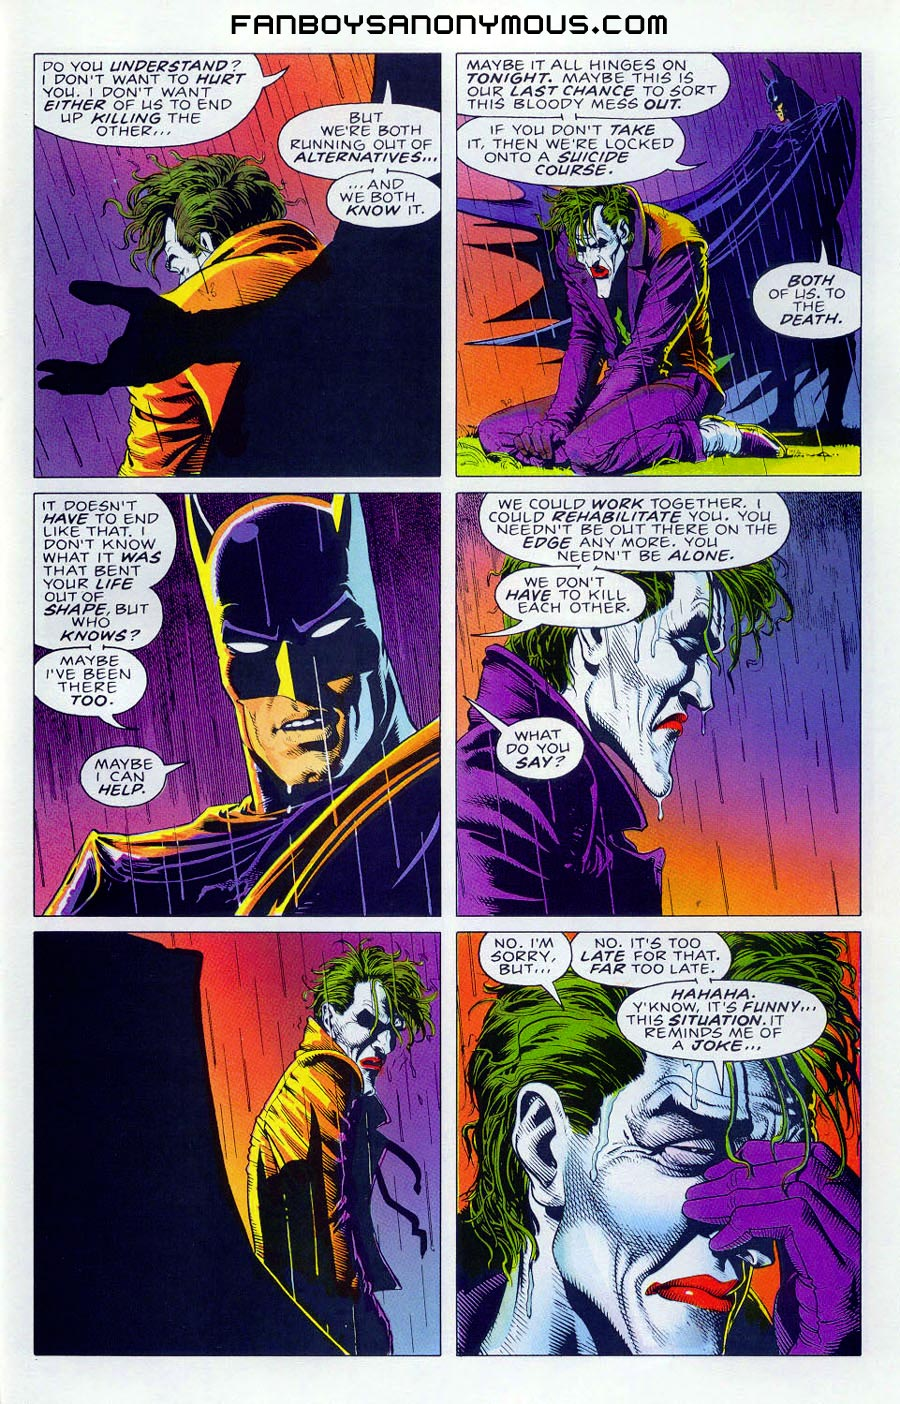 Read The Killing Joke Batman Story Online Free